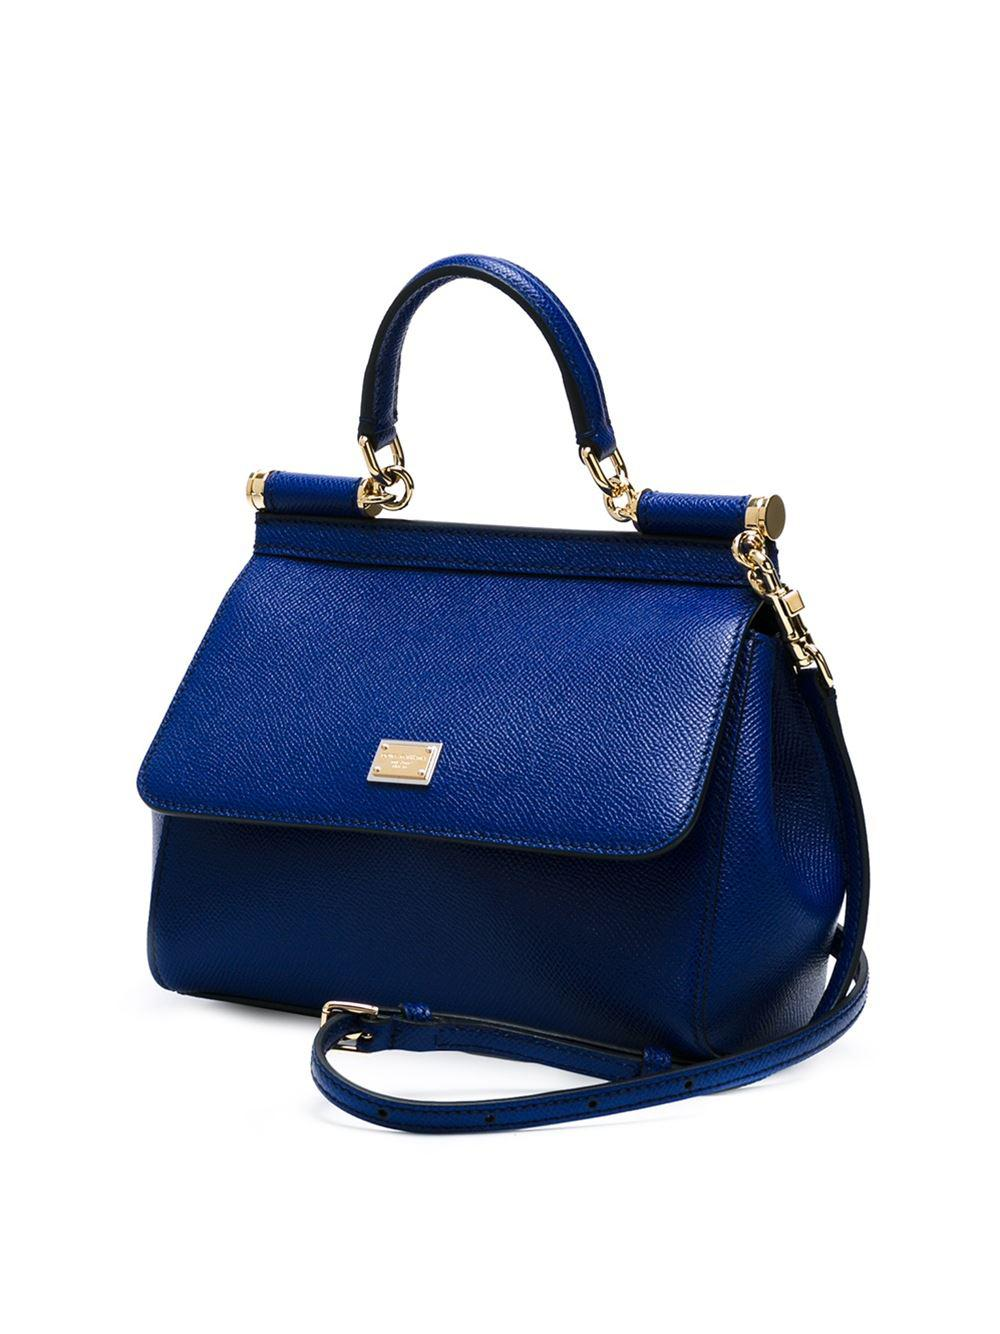 Dolce & Gabbana Leather Sicily Classic Tote in Blue